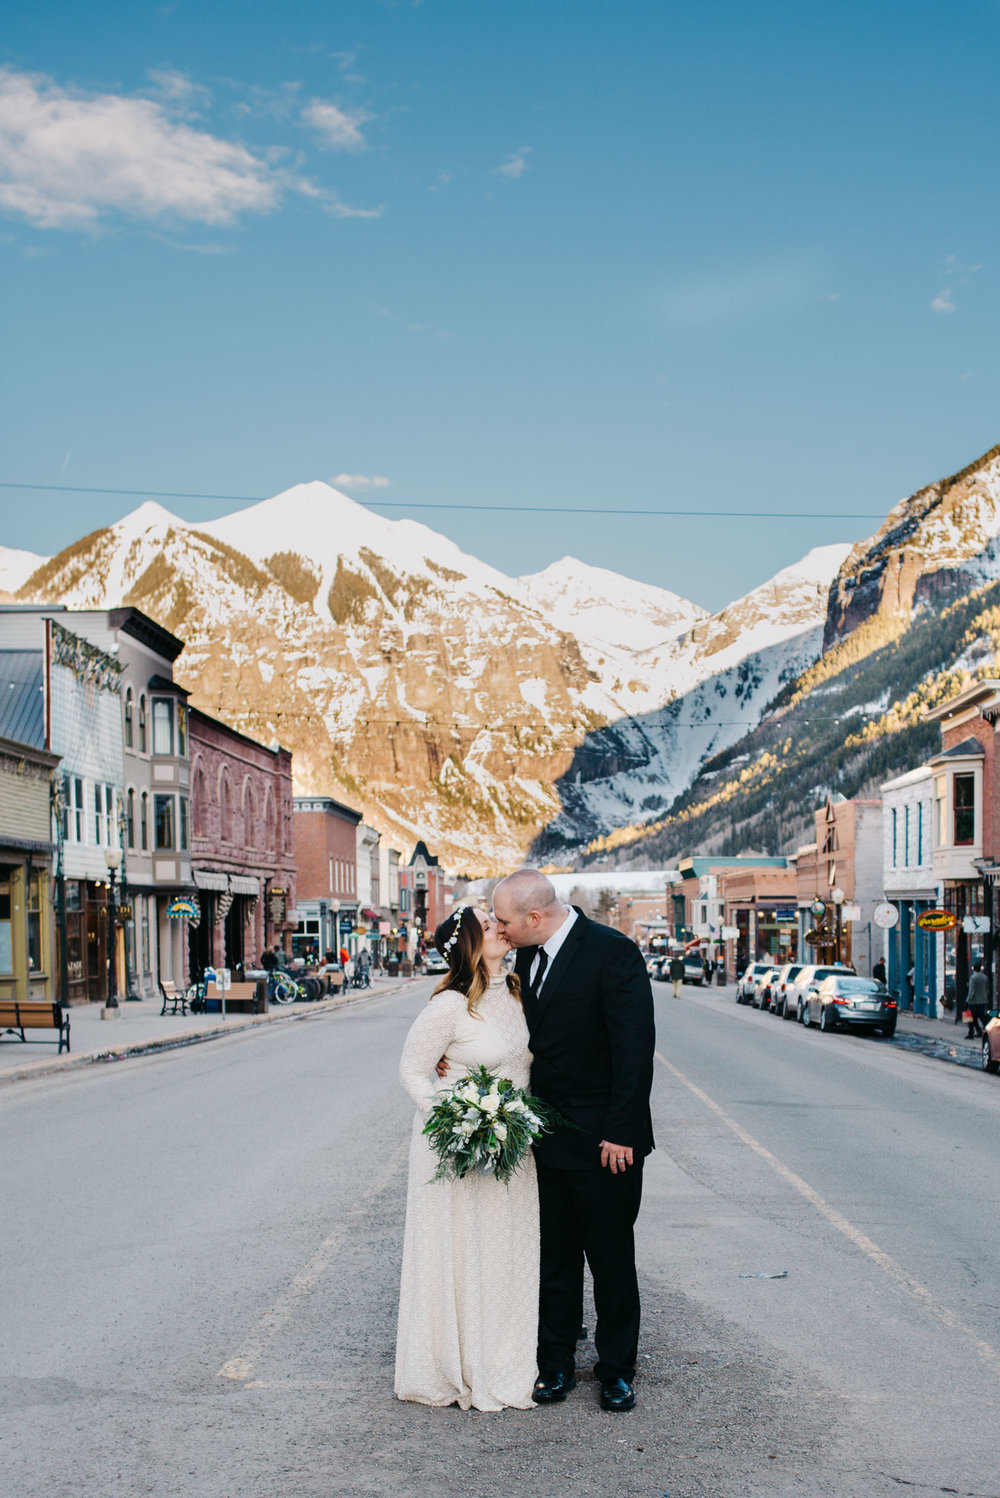 104elopement-photographer-colorado-telluride-winter-wedding-mountain-wedding-photographer-paige&chad-0937-2.jpg